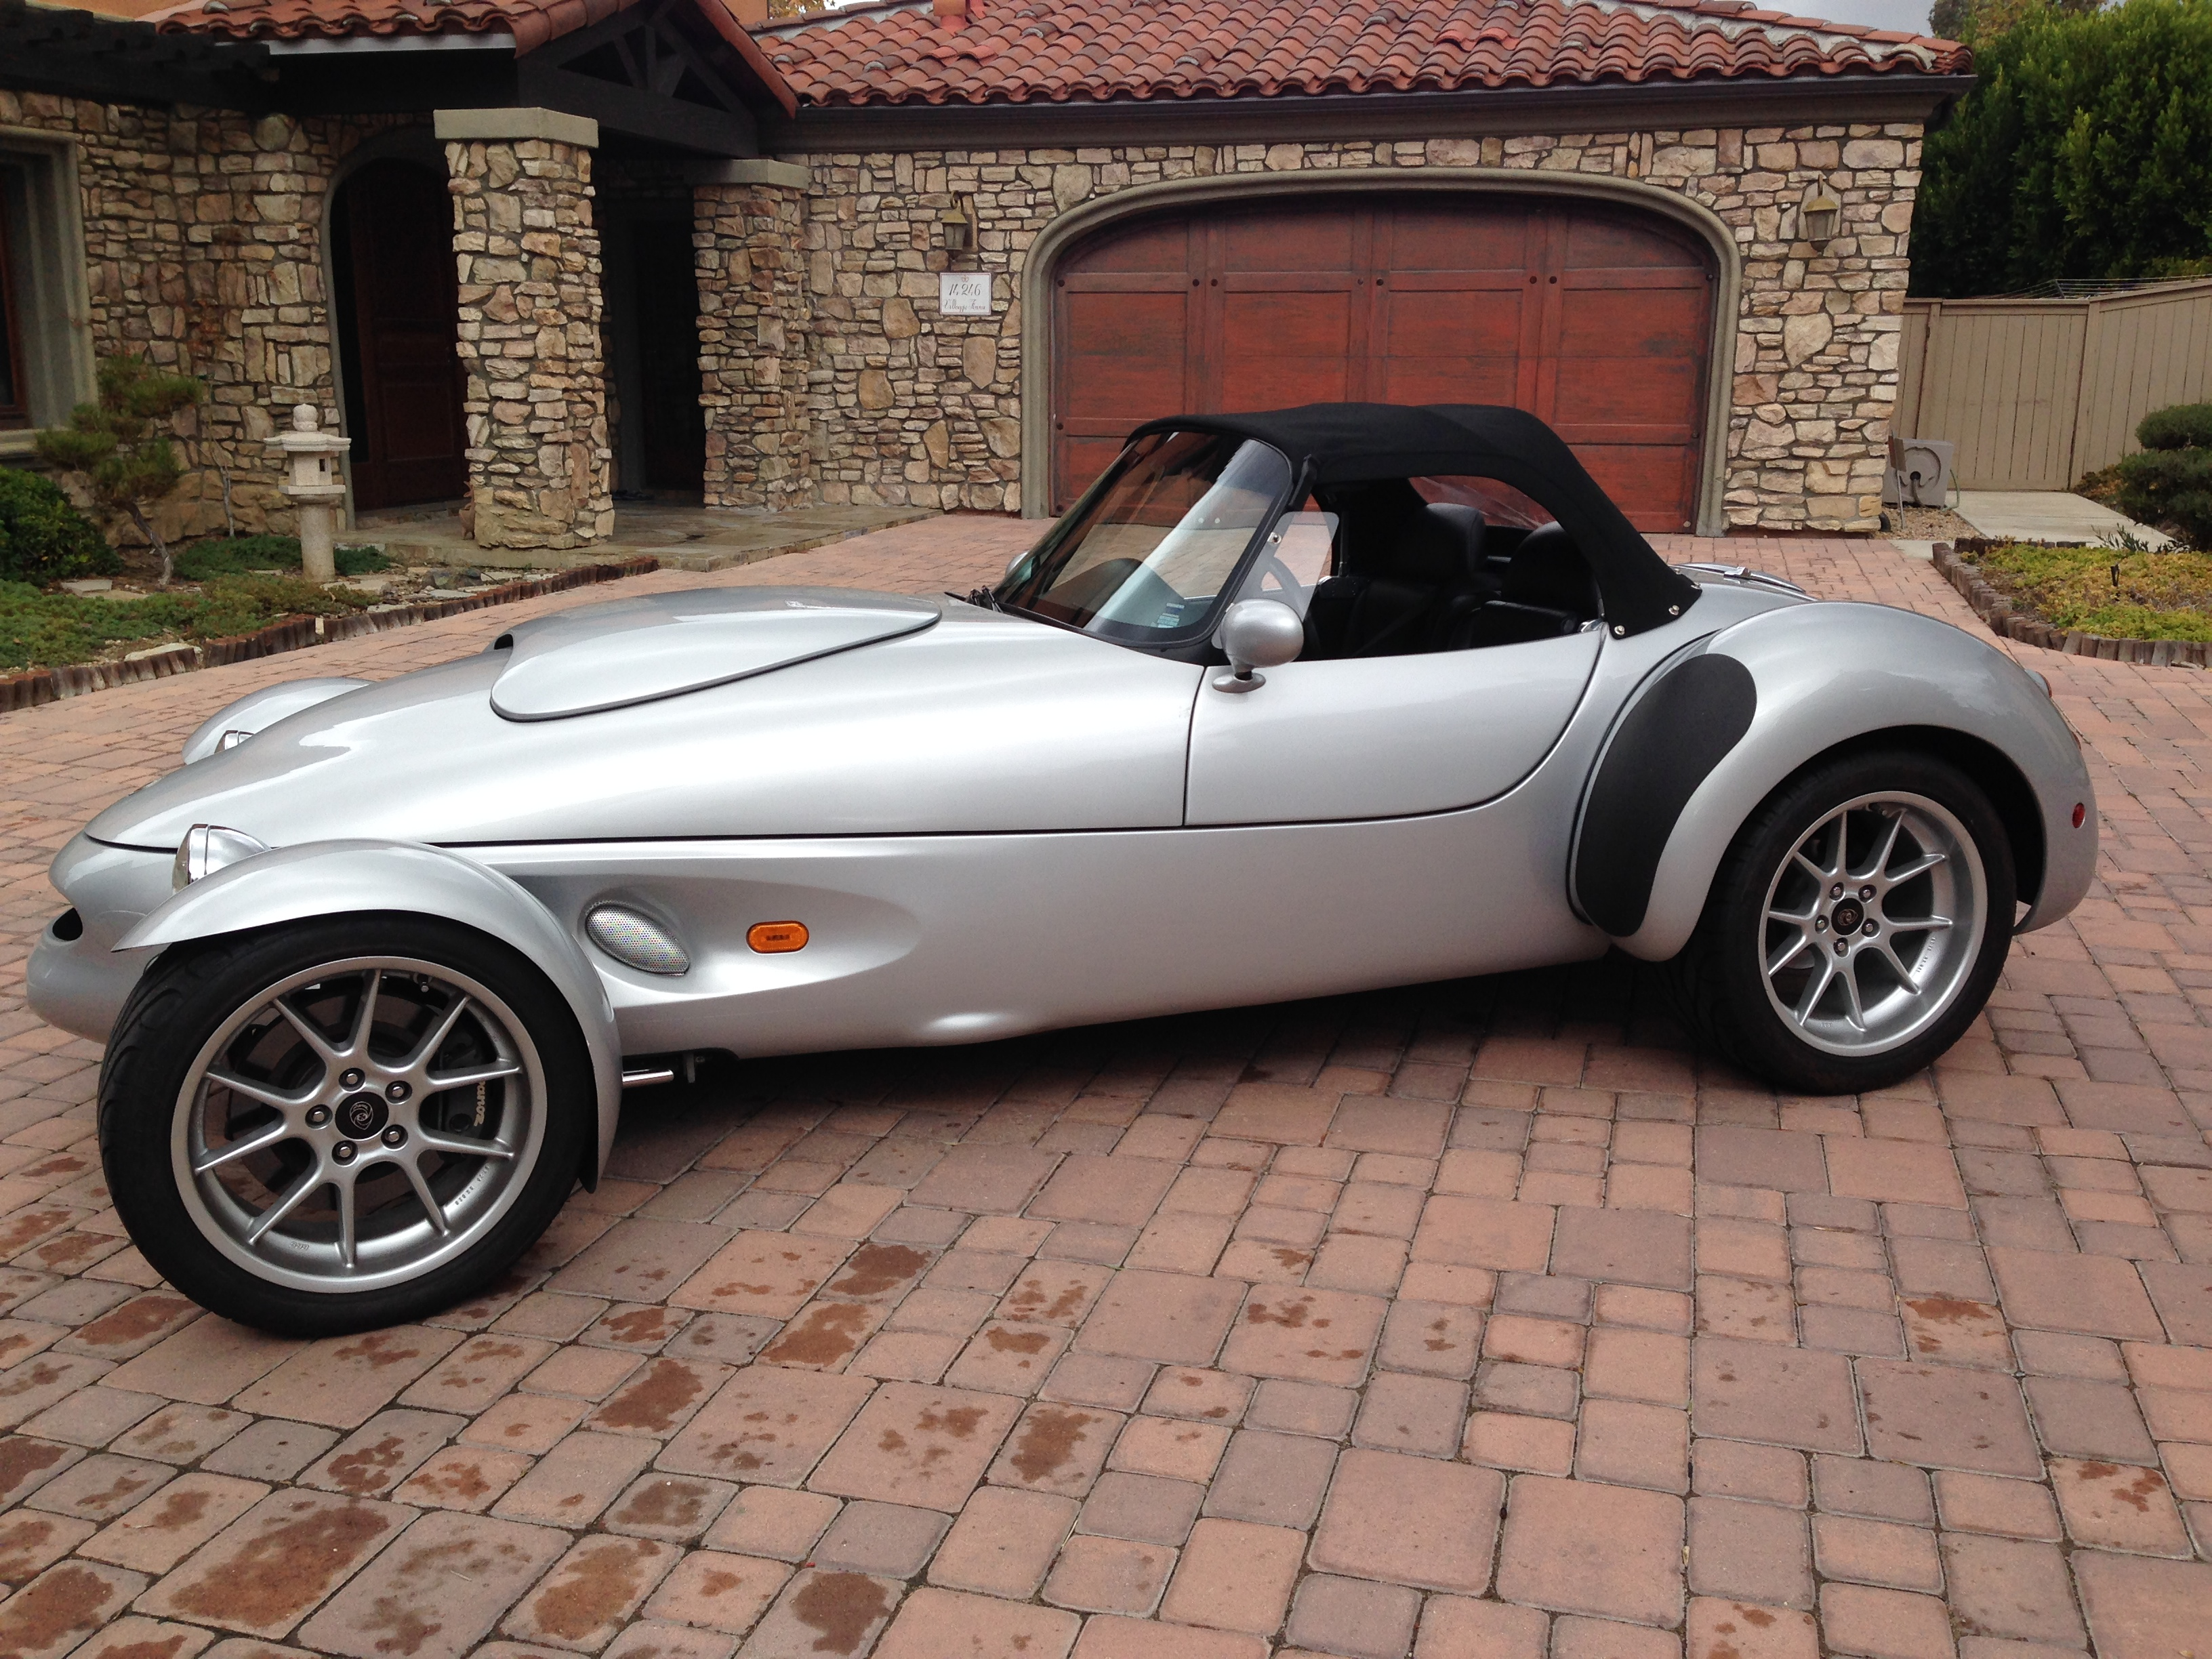 1999 Ford Panoz